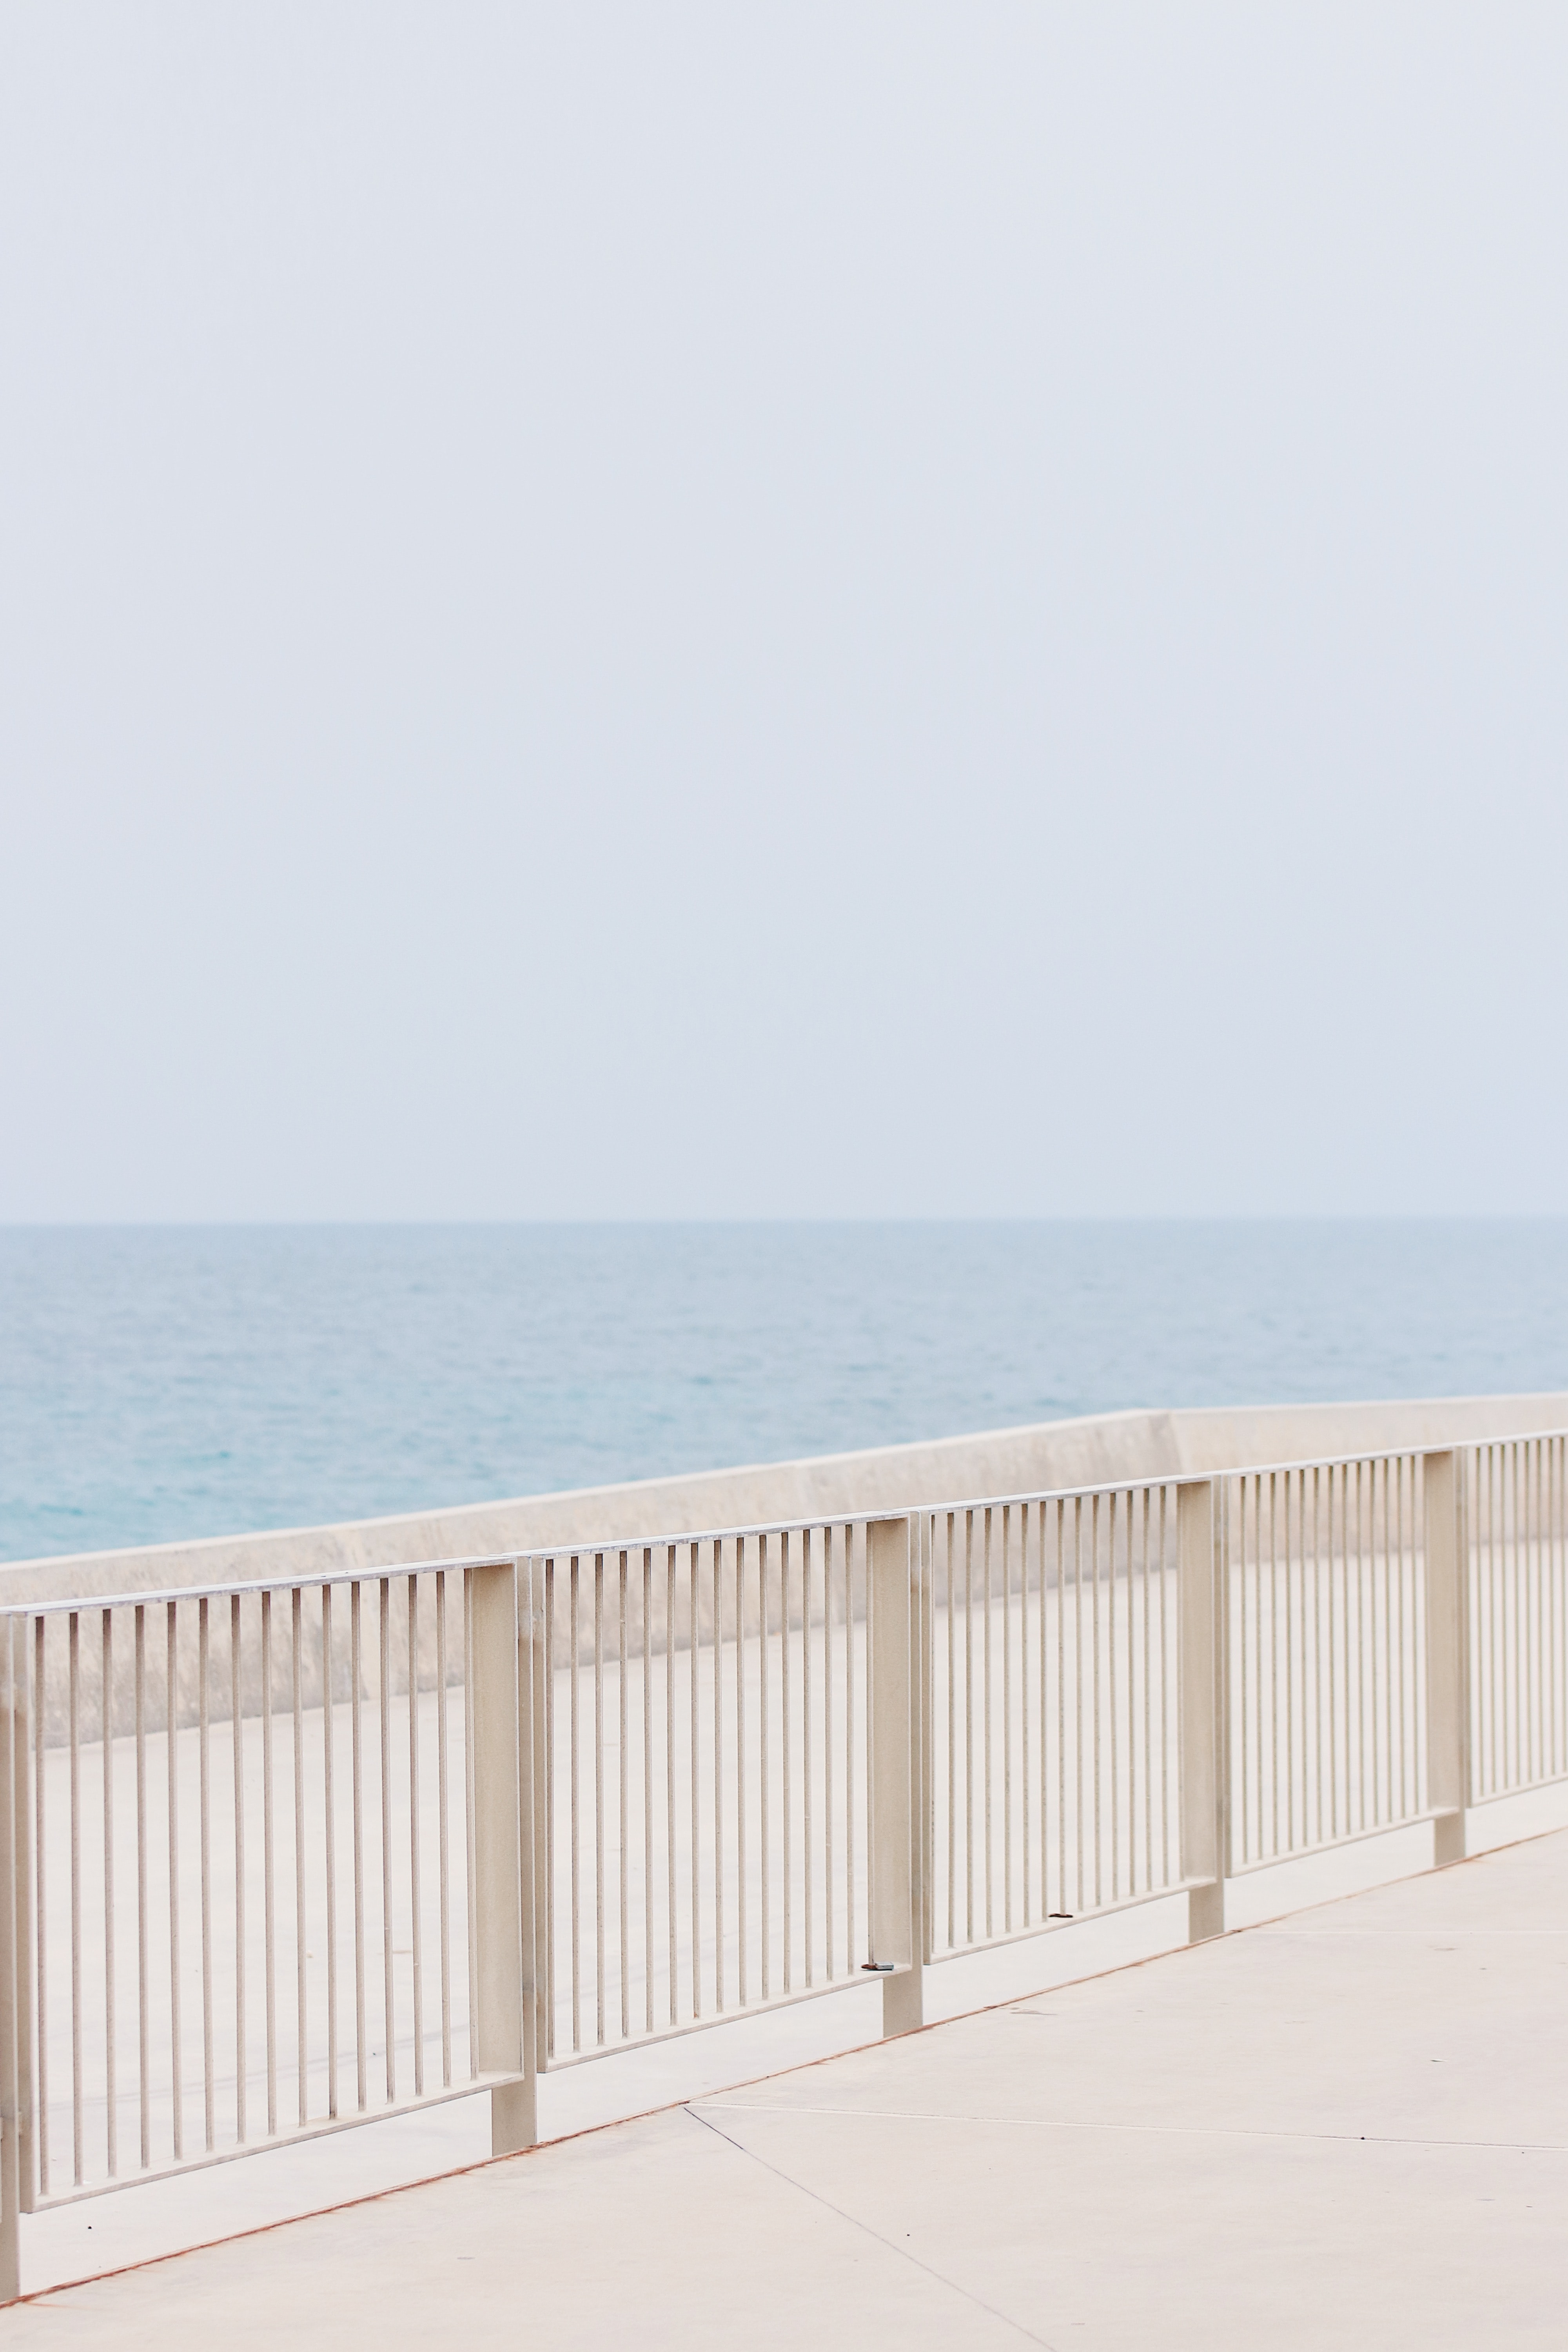 white metal handrails in a distance of sea